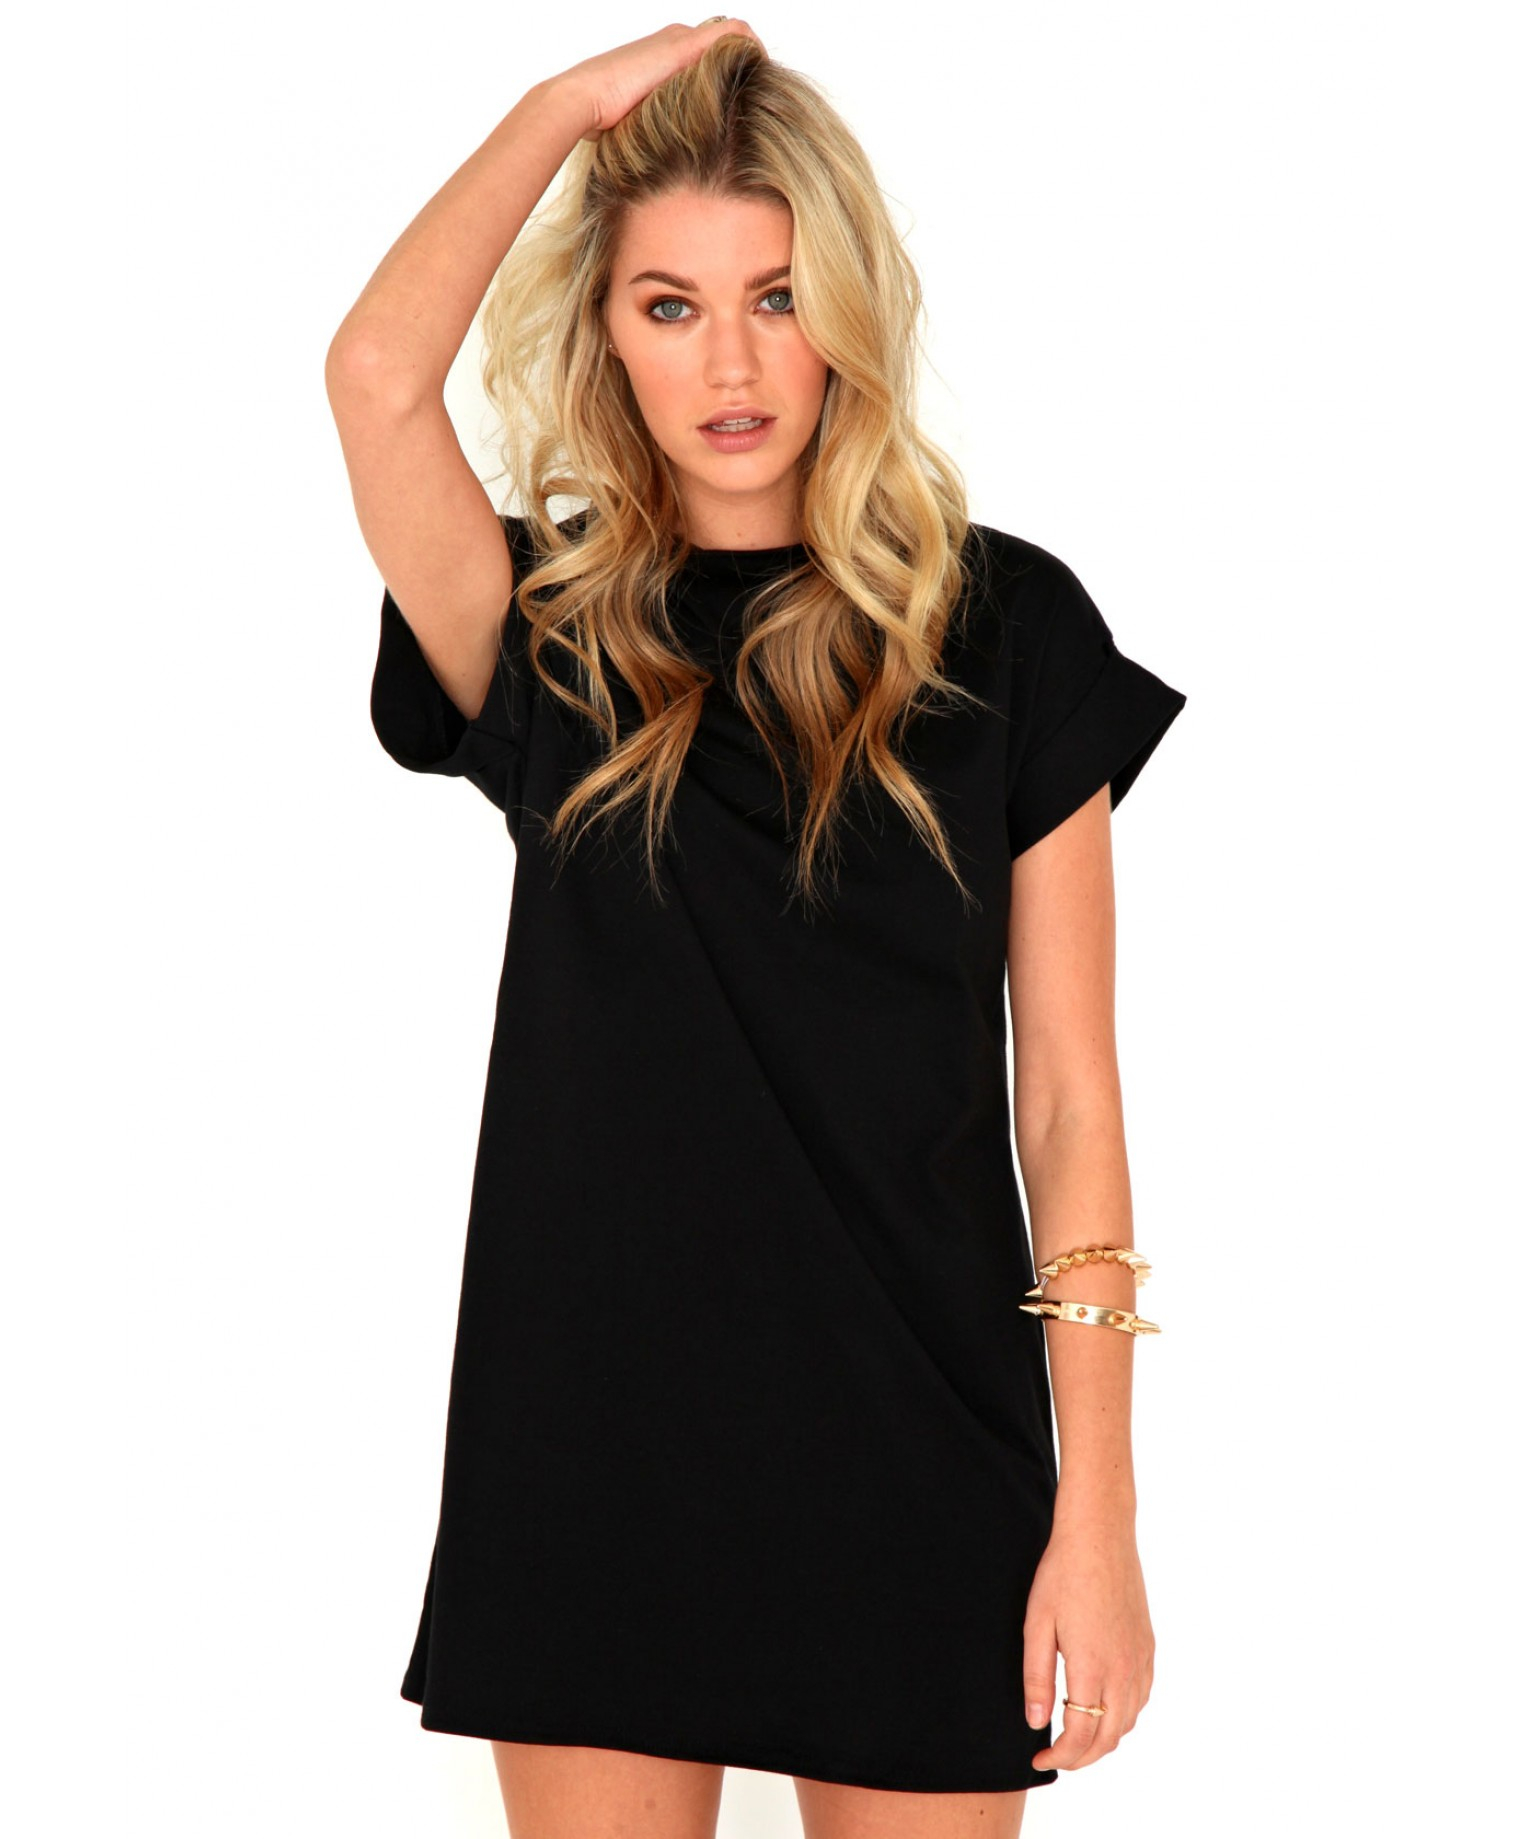 T-Shirt Dresses. T-Shirt Dresses. Styles Found. If it's effortless style you want to go for then our tshirt dresses are exactly what your wardrobe has been looking for. From printed styles to slogan tees, we've got tshirt dresses in basically every style to suit whatever the occasion. Black Oversized Skeleton T Shirt Dress $